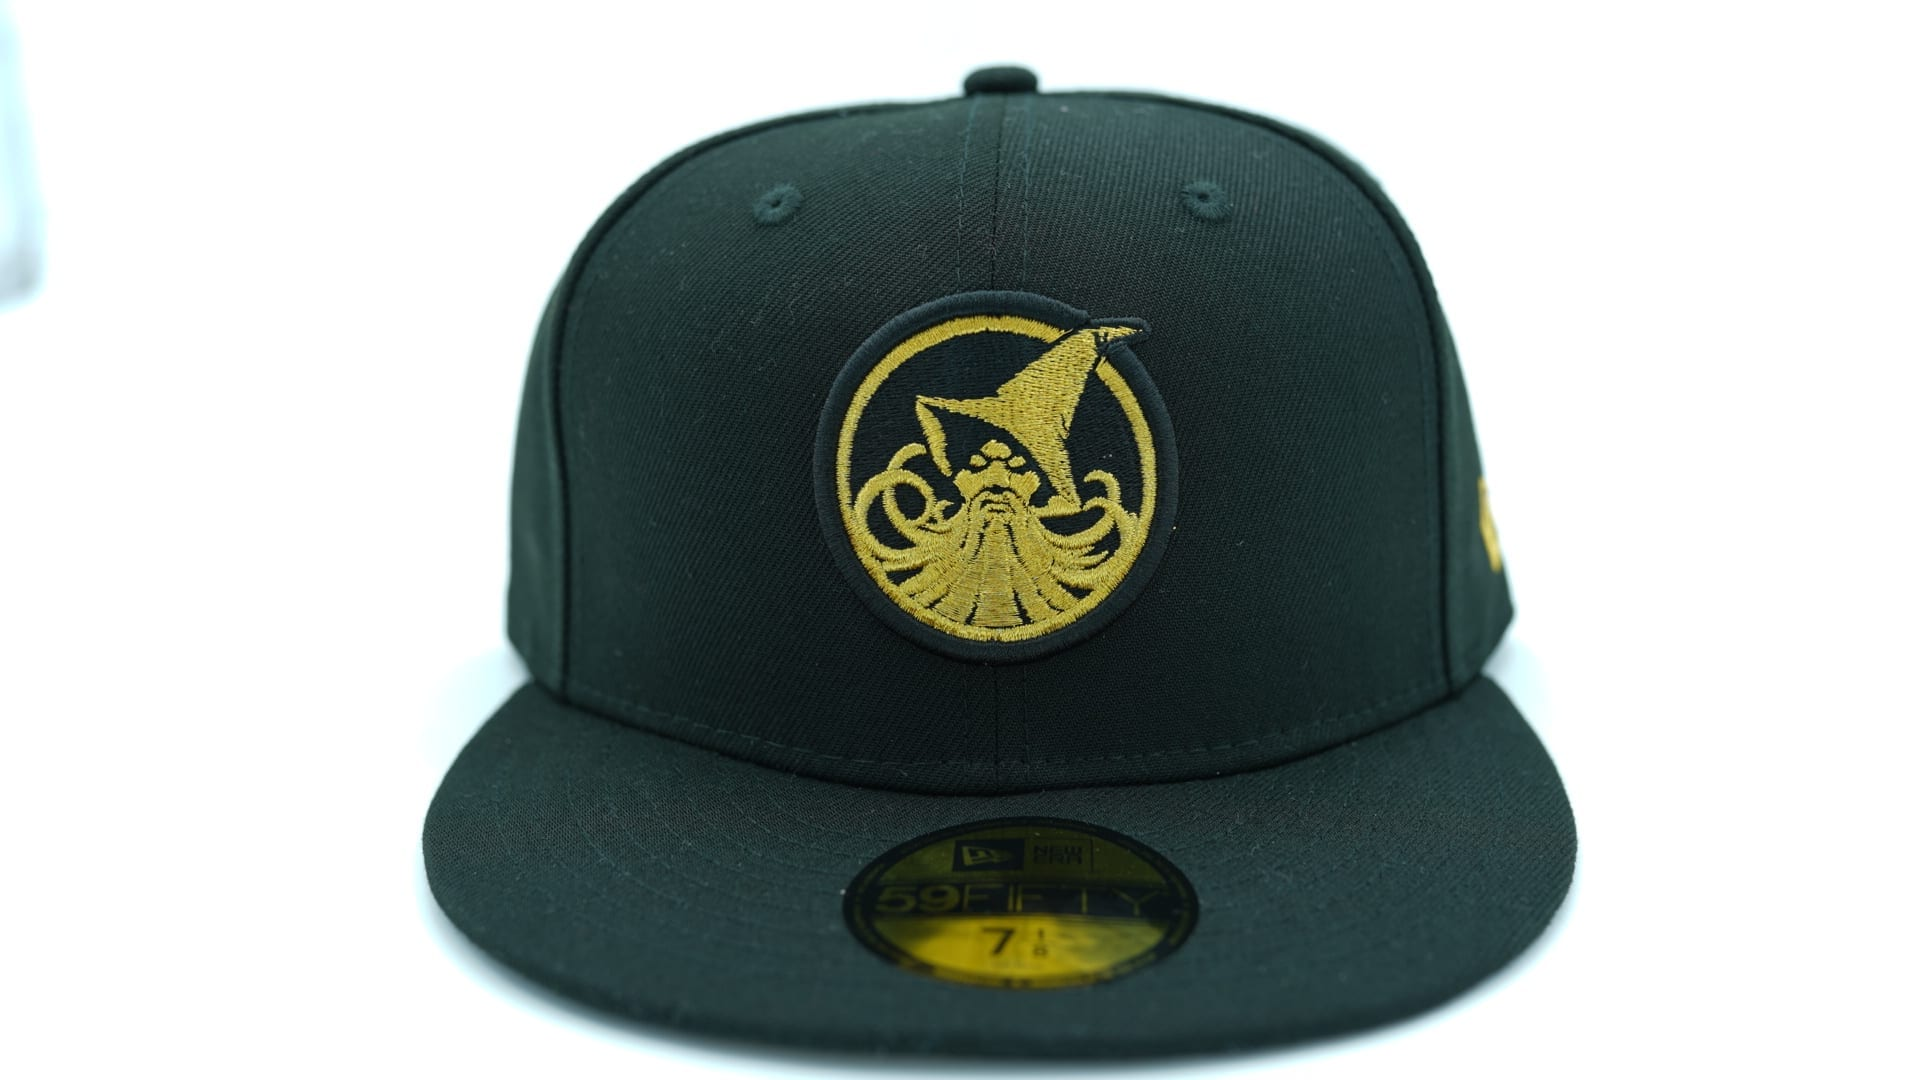 inspectah deck fitted baseball cap 7 union wu tang clan